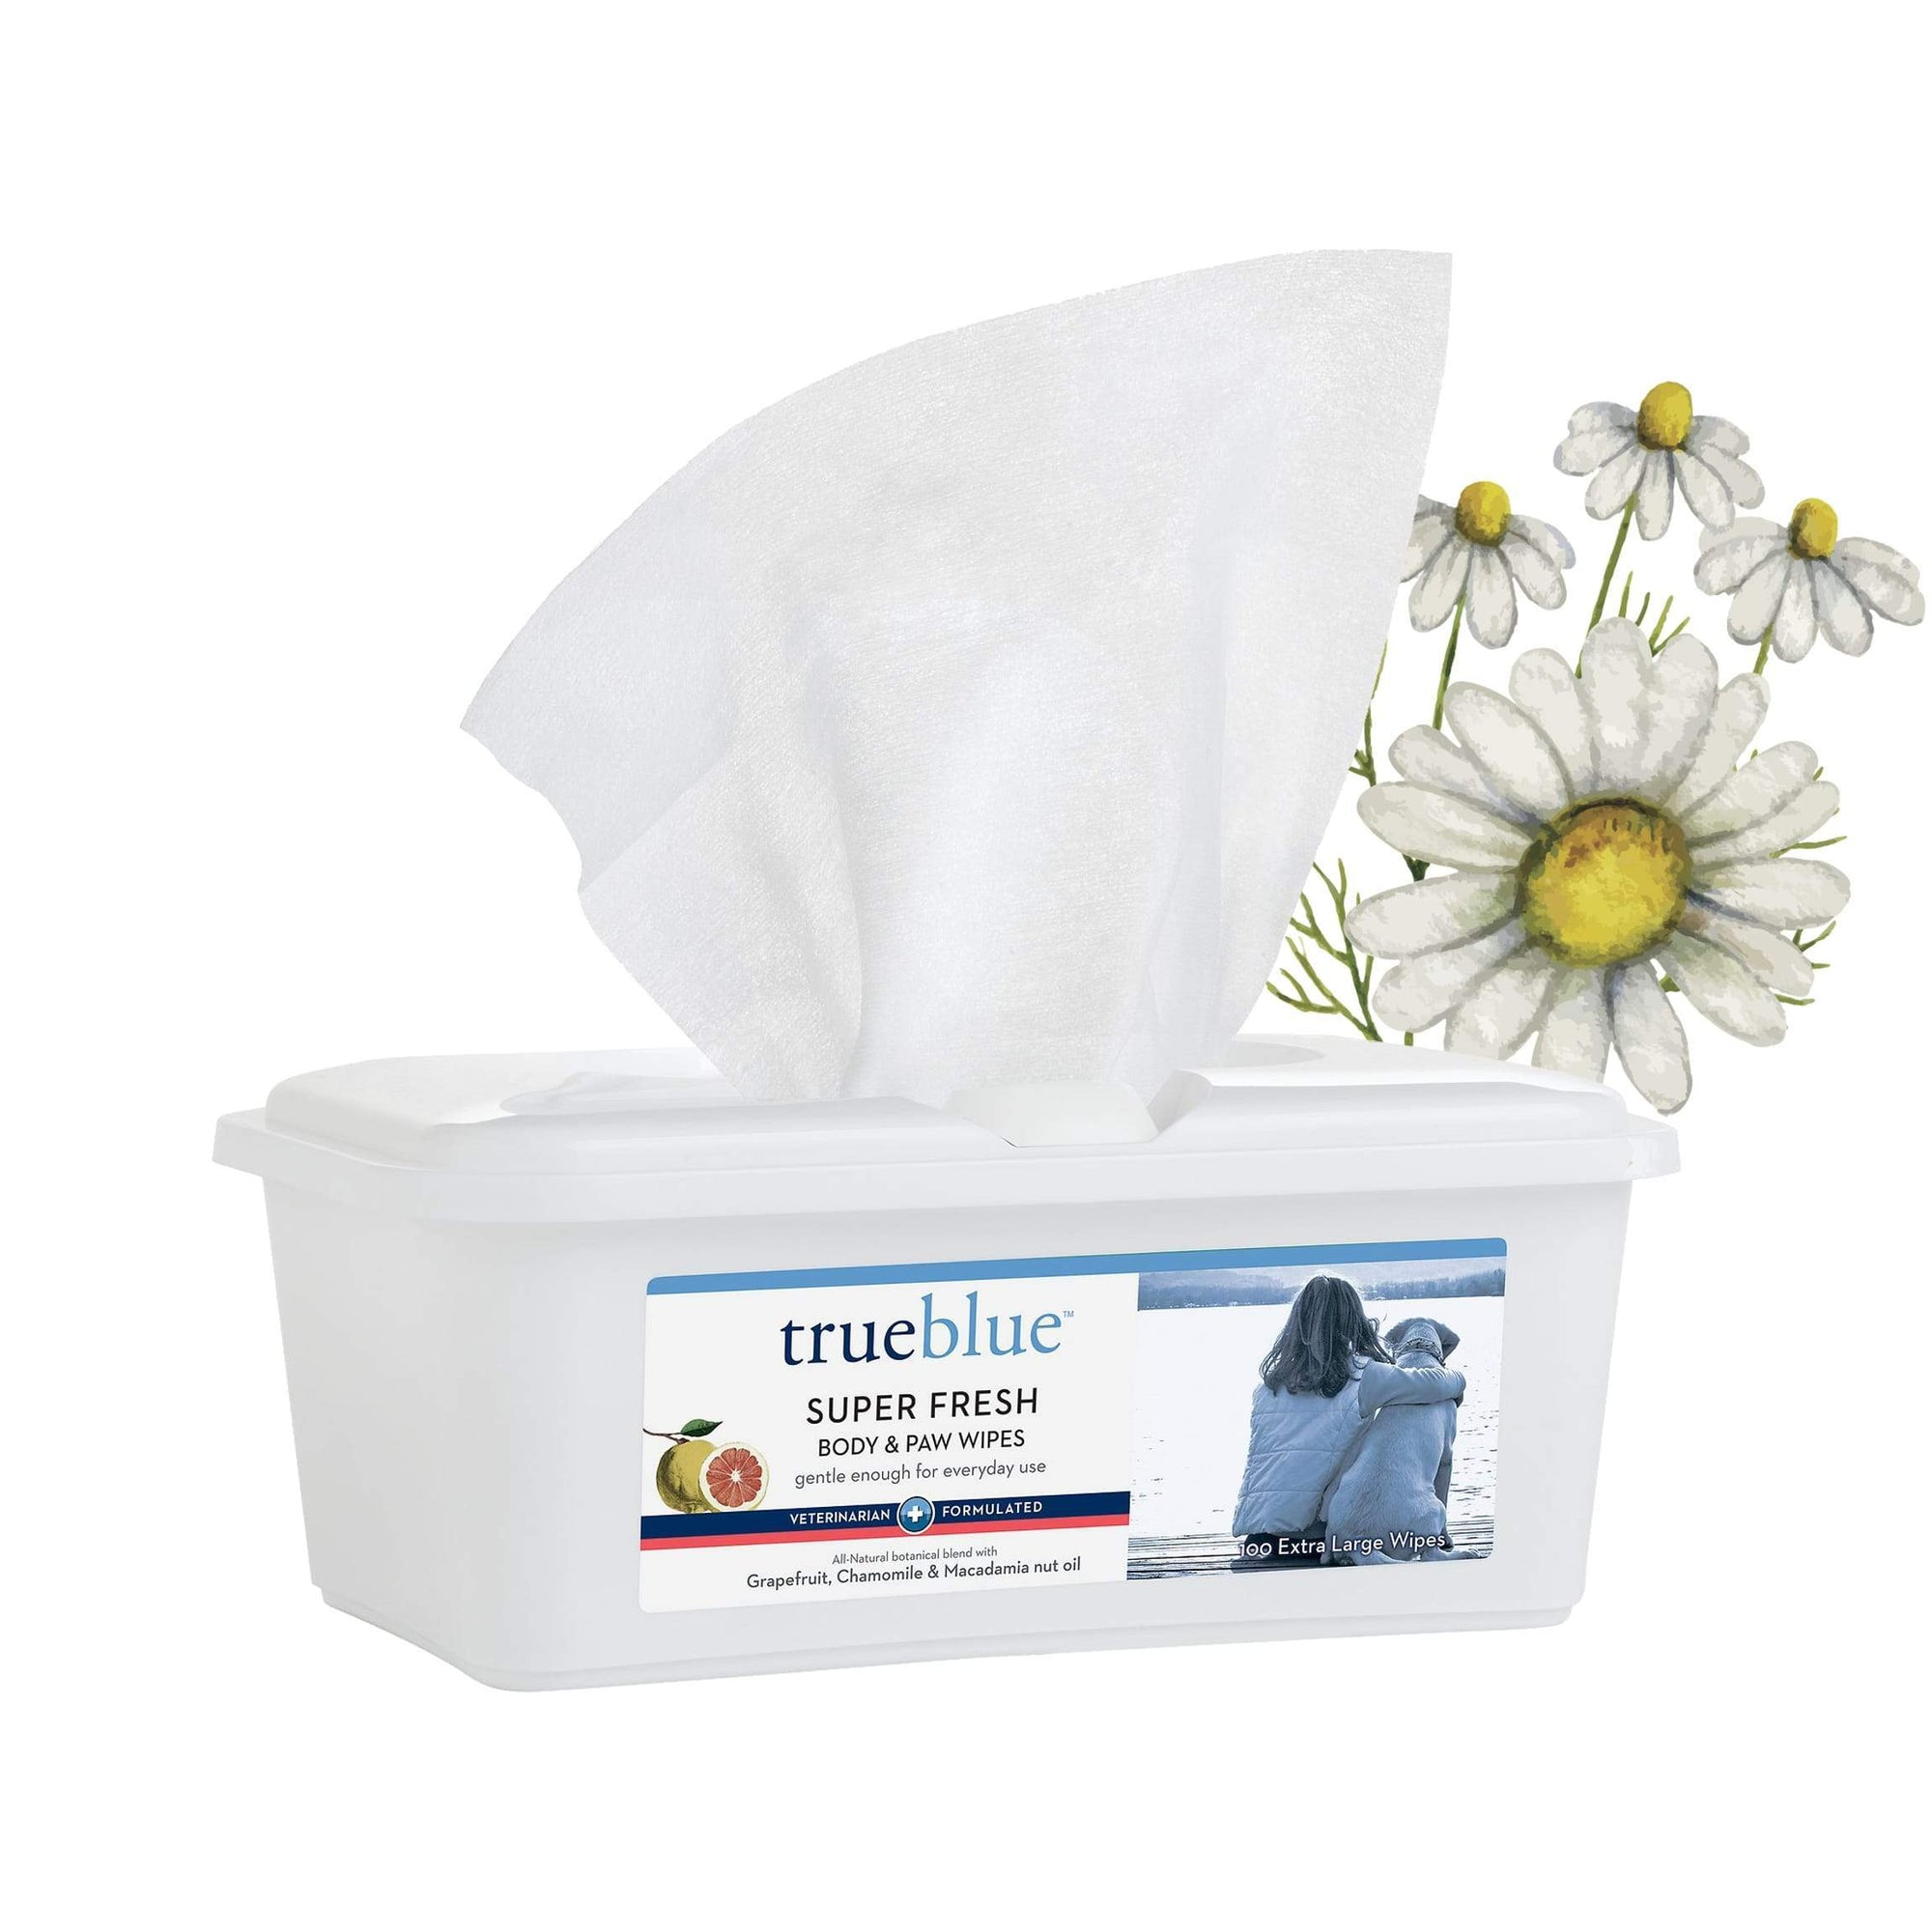 True Blue Super Fresh Body&Paw Wipes-Grapefruit/Macadamia Extract 100ct - For Southeastern Guide Dogs